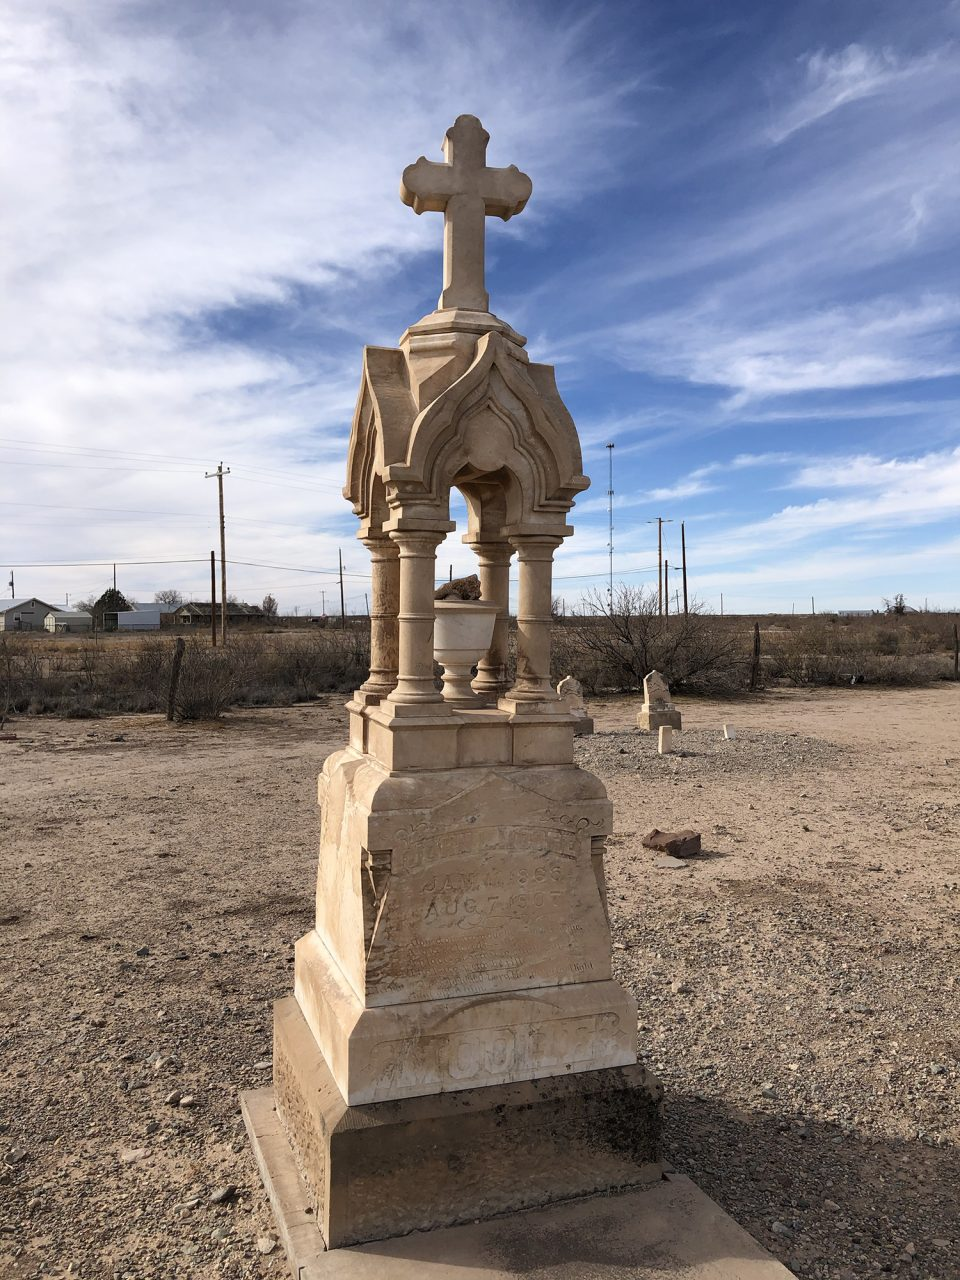 The remarkable stone gravestone of John L. Moore, one of the more elaborate markers in the old windswept cemetery in Toyah, Texas.